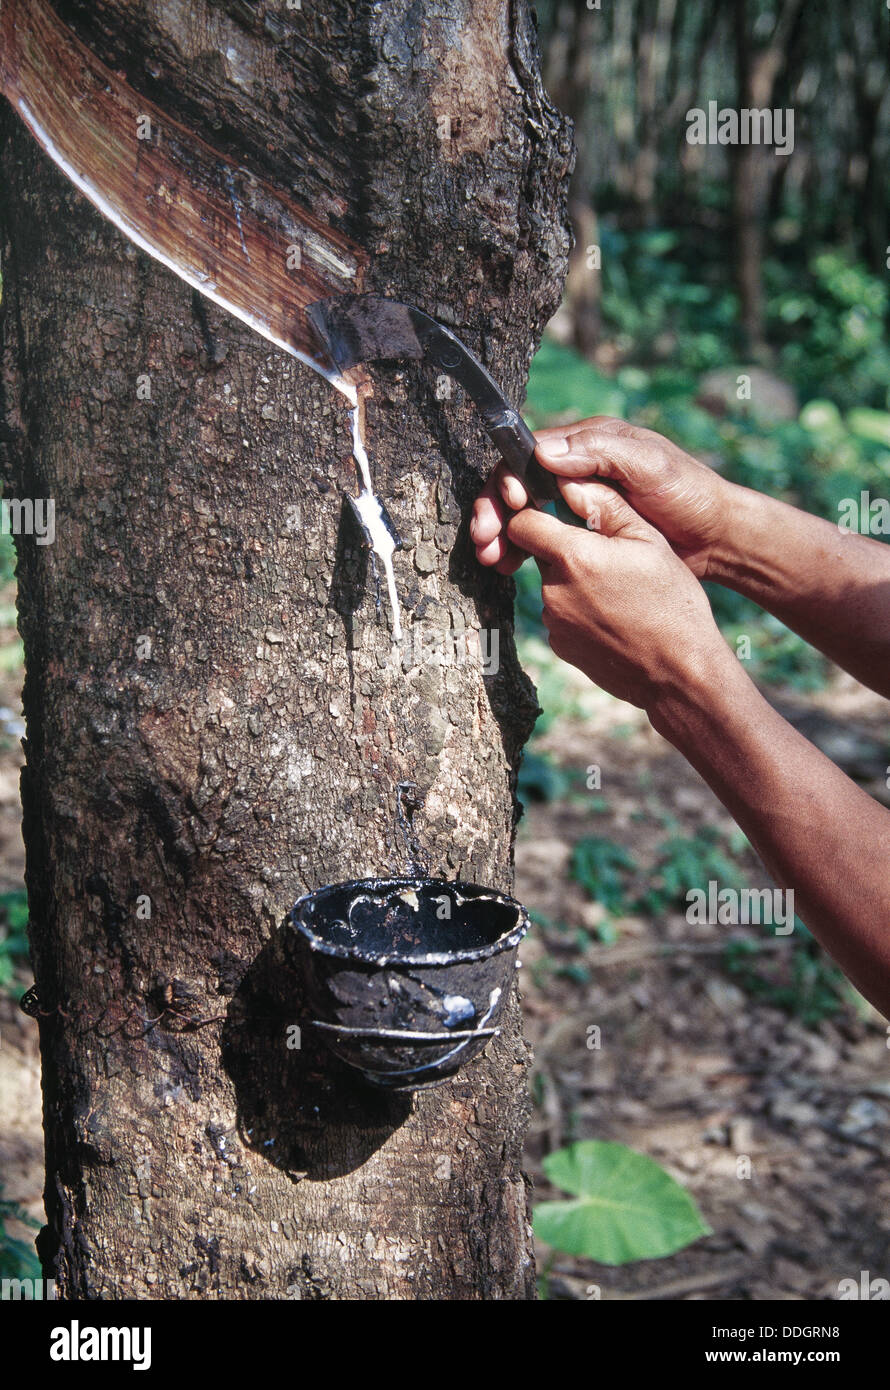 Hands using gouge scoring bark of Para 'rubber' tree to extract latex. - Stock Image